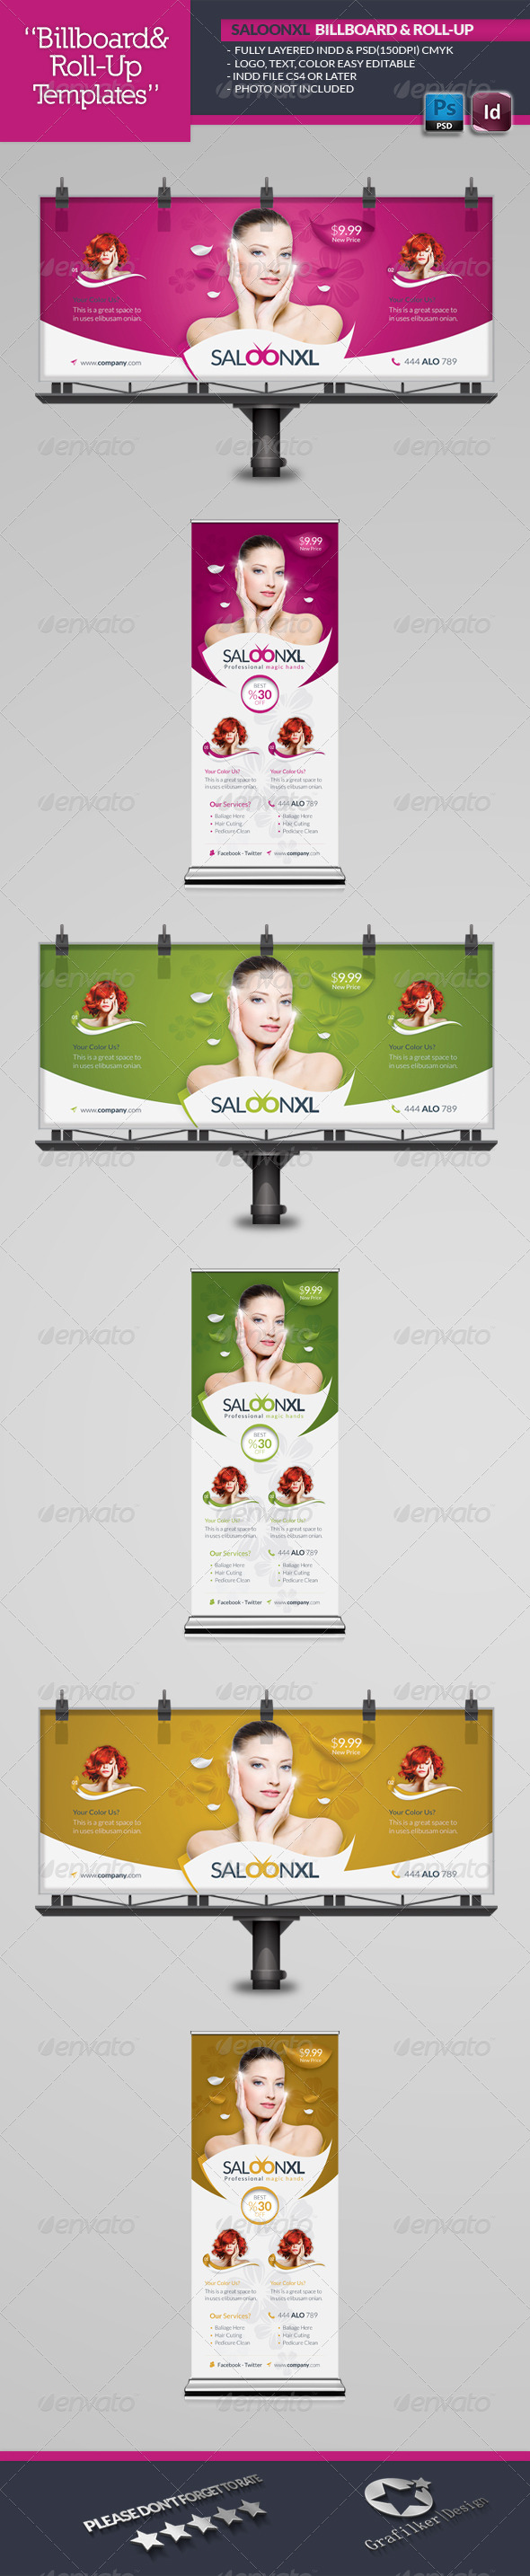 GraphicRiver Beauty Saloon Billboard Roll-Up Template 6035211